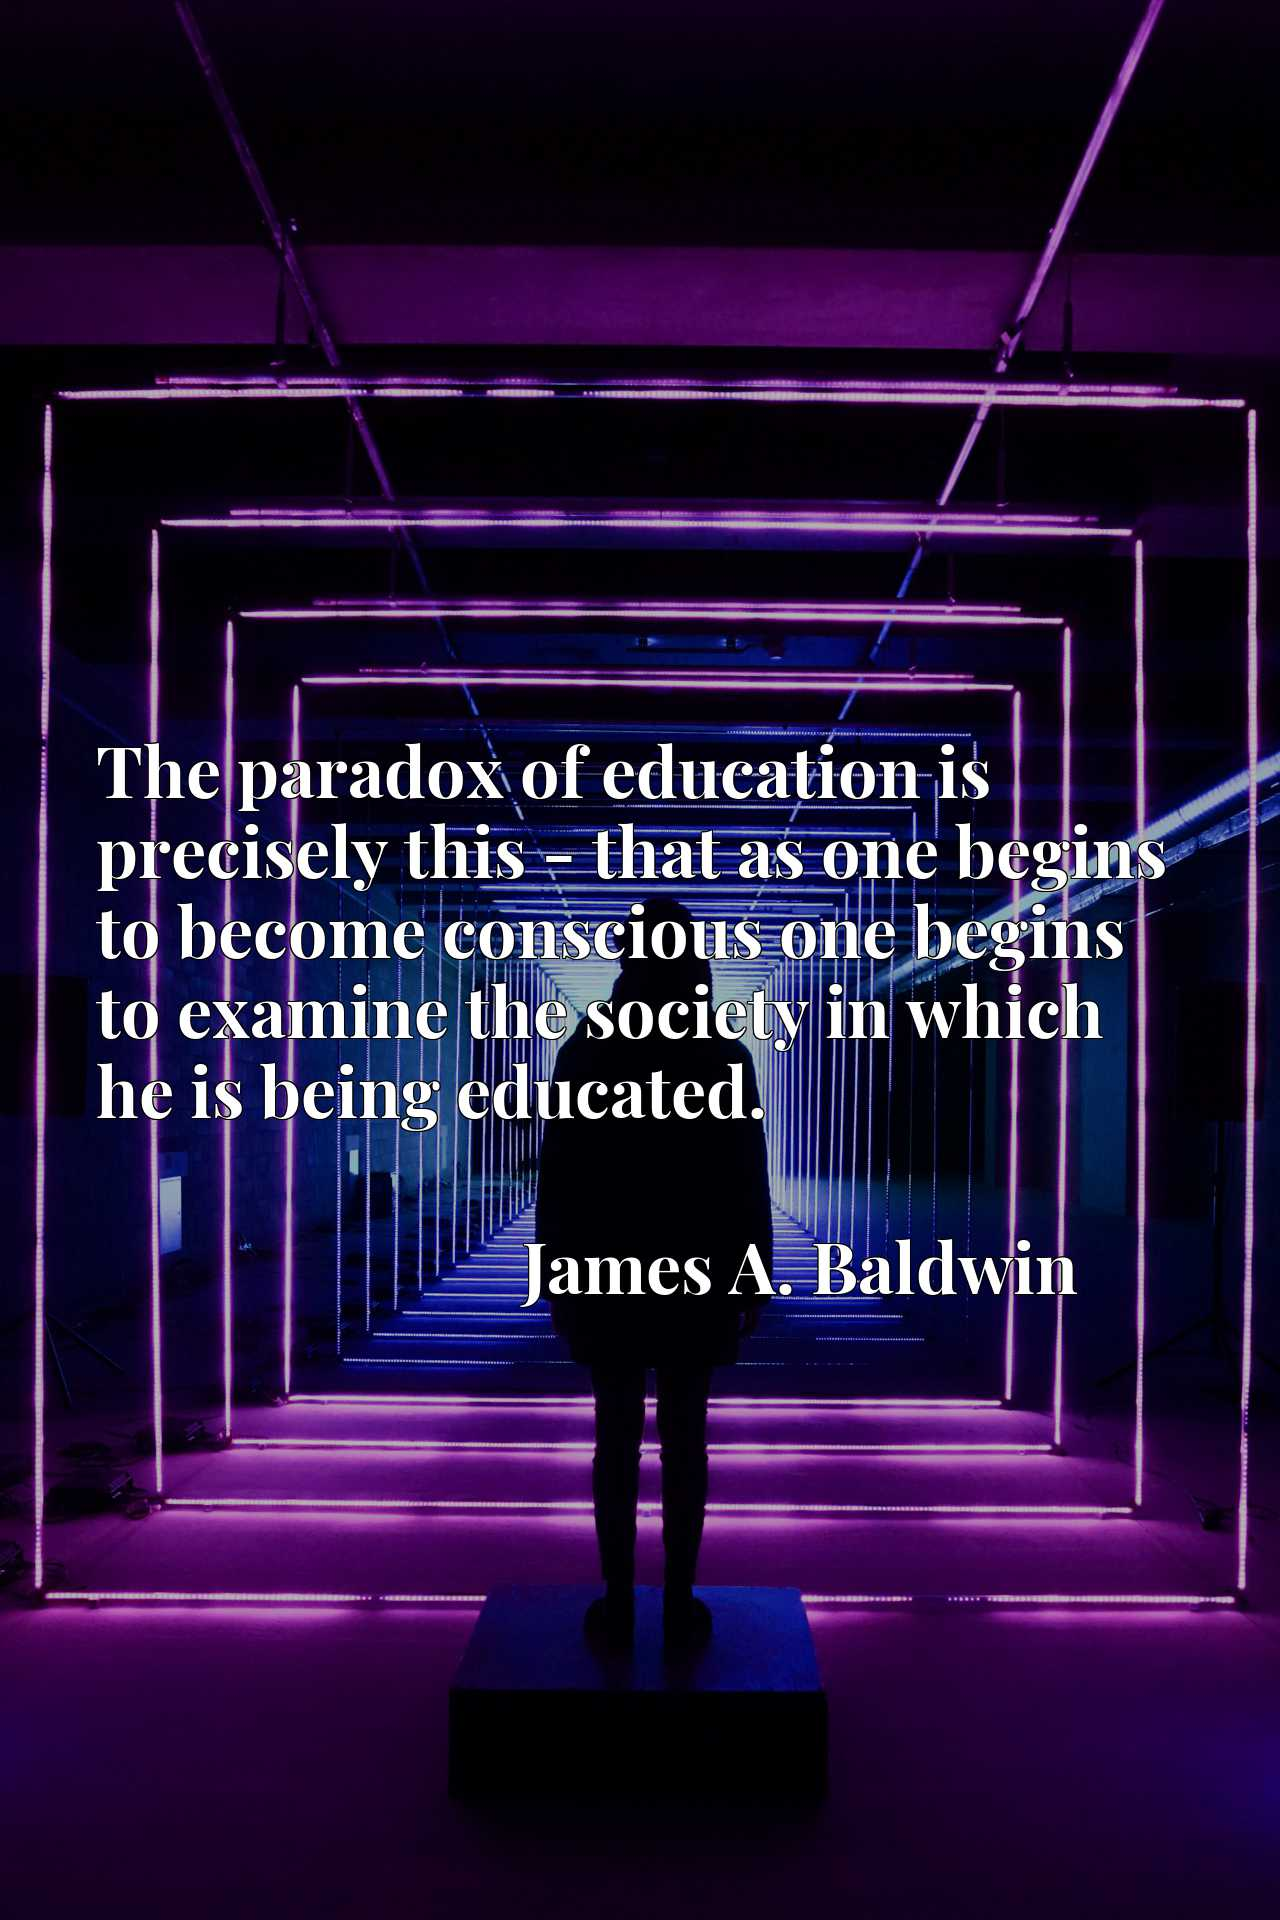 The paradox of education is precisely this - that as one begins to become conscious one begins to examine the society in which he is being educated.